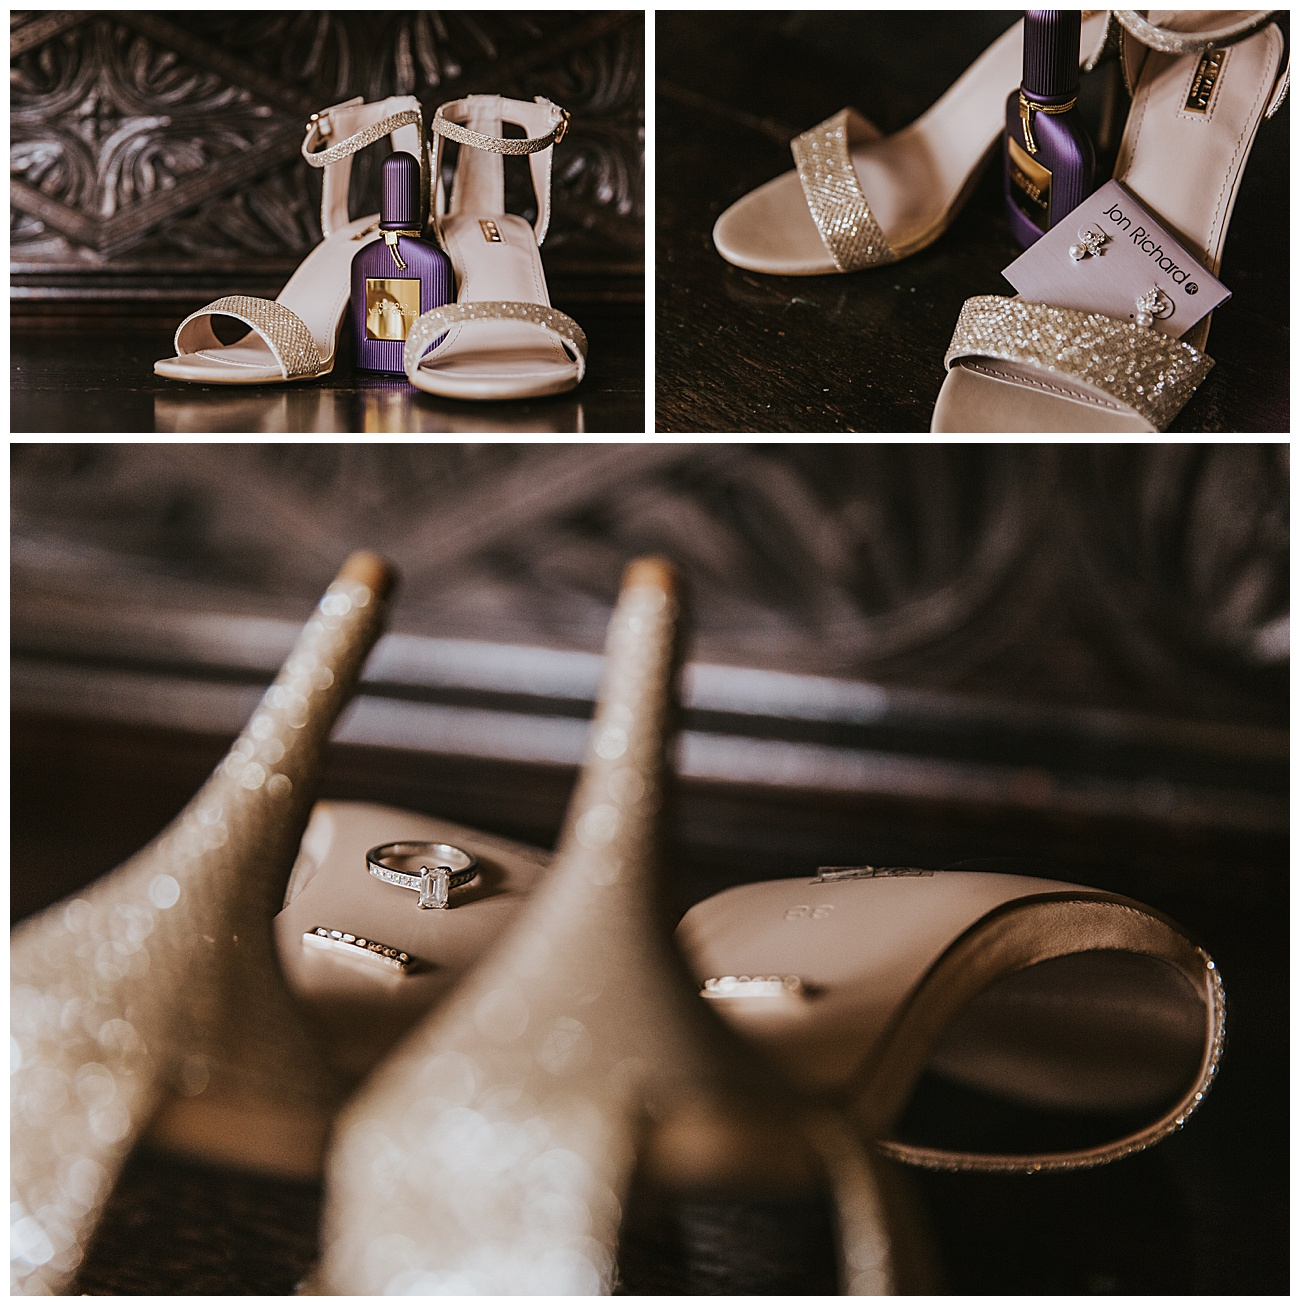 The brides wedding shoes, perfume, earrings and rings